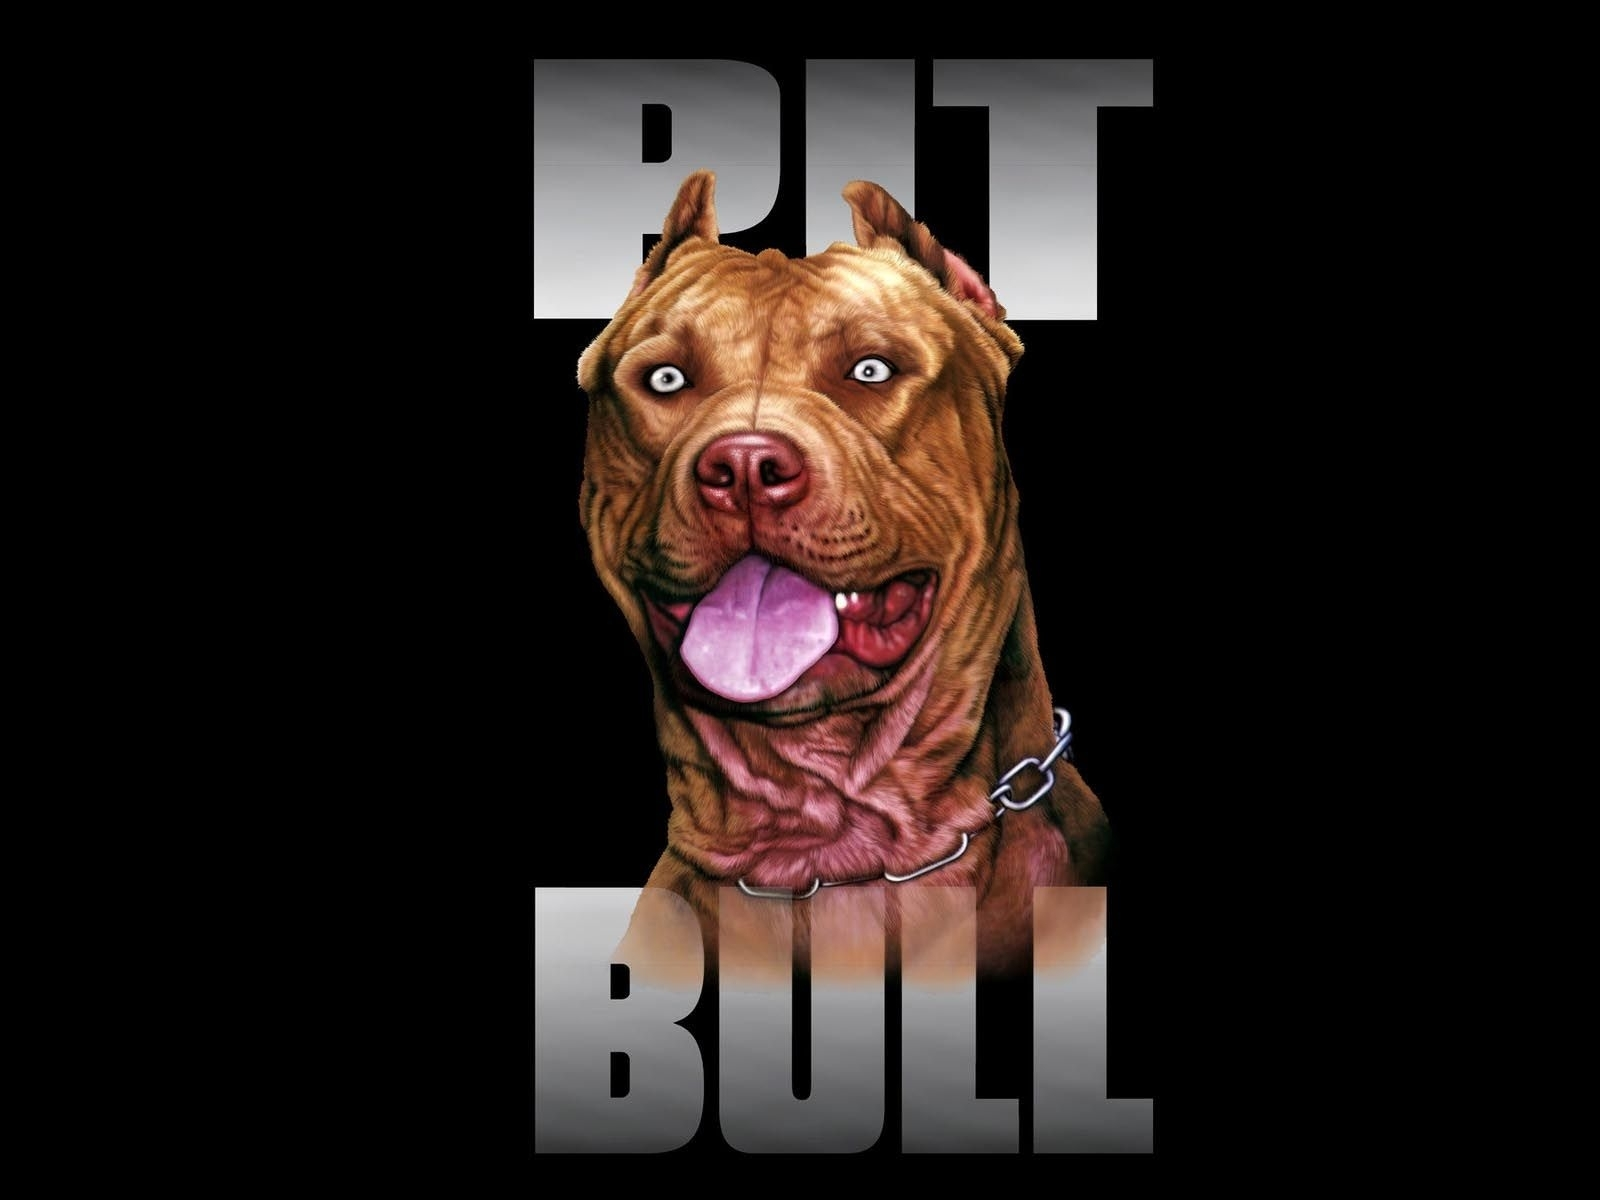 pitbull dog wallpapers wallpaper | hd wallpapers | pinterest | wallpaper